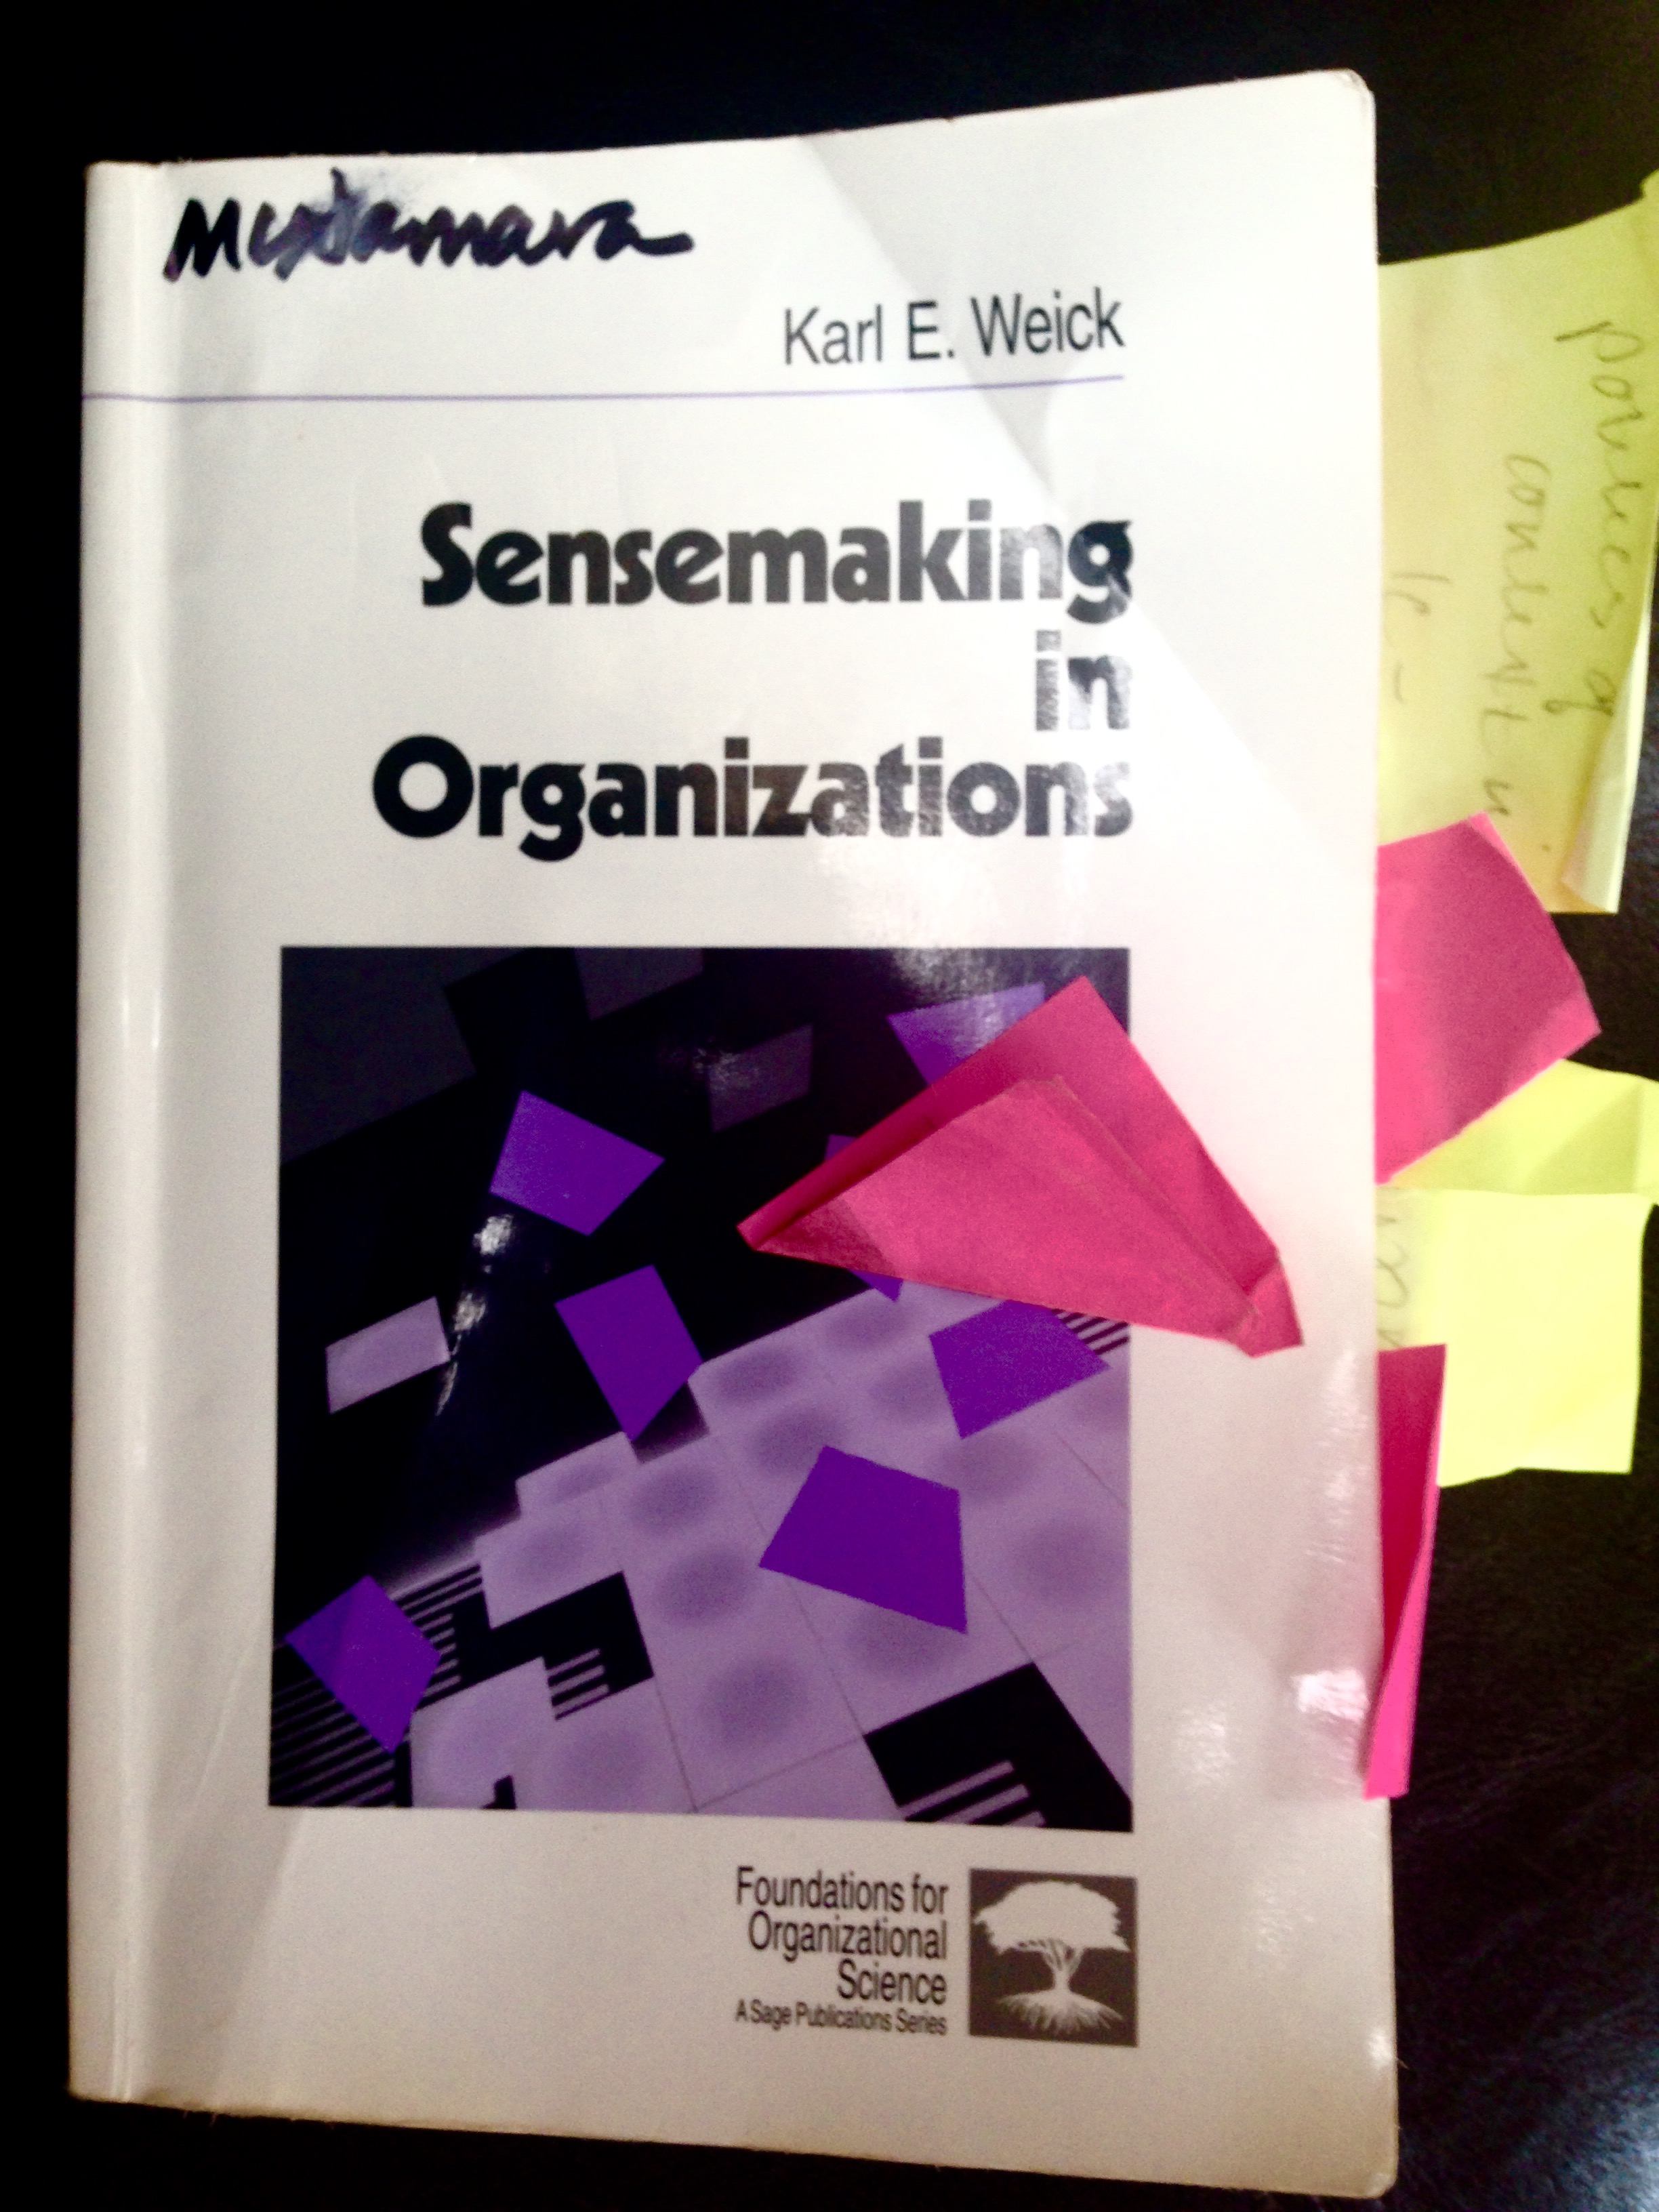 Sensemaking In Organizations Reflections On Karl Weick And Social Theory Epic